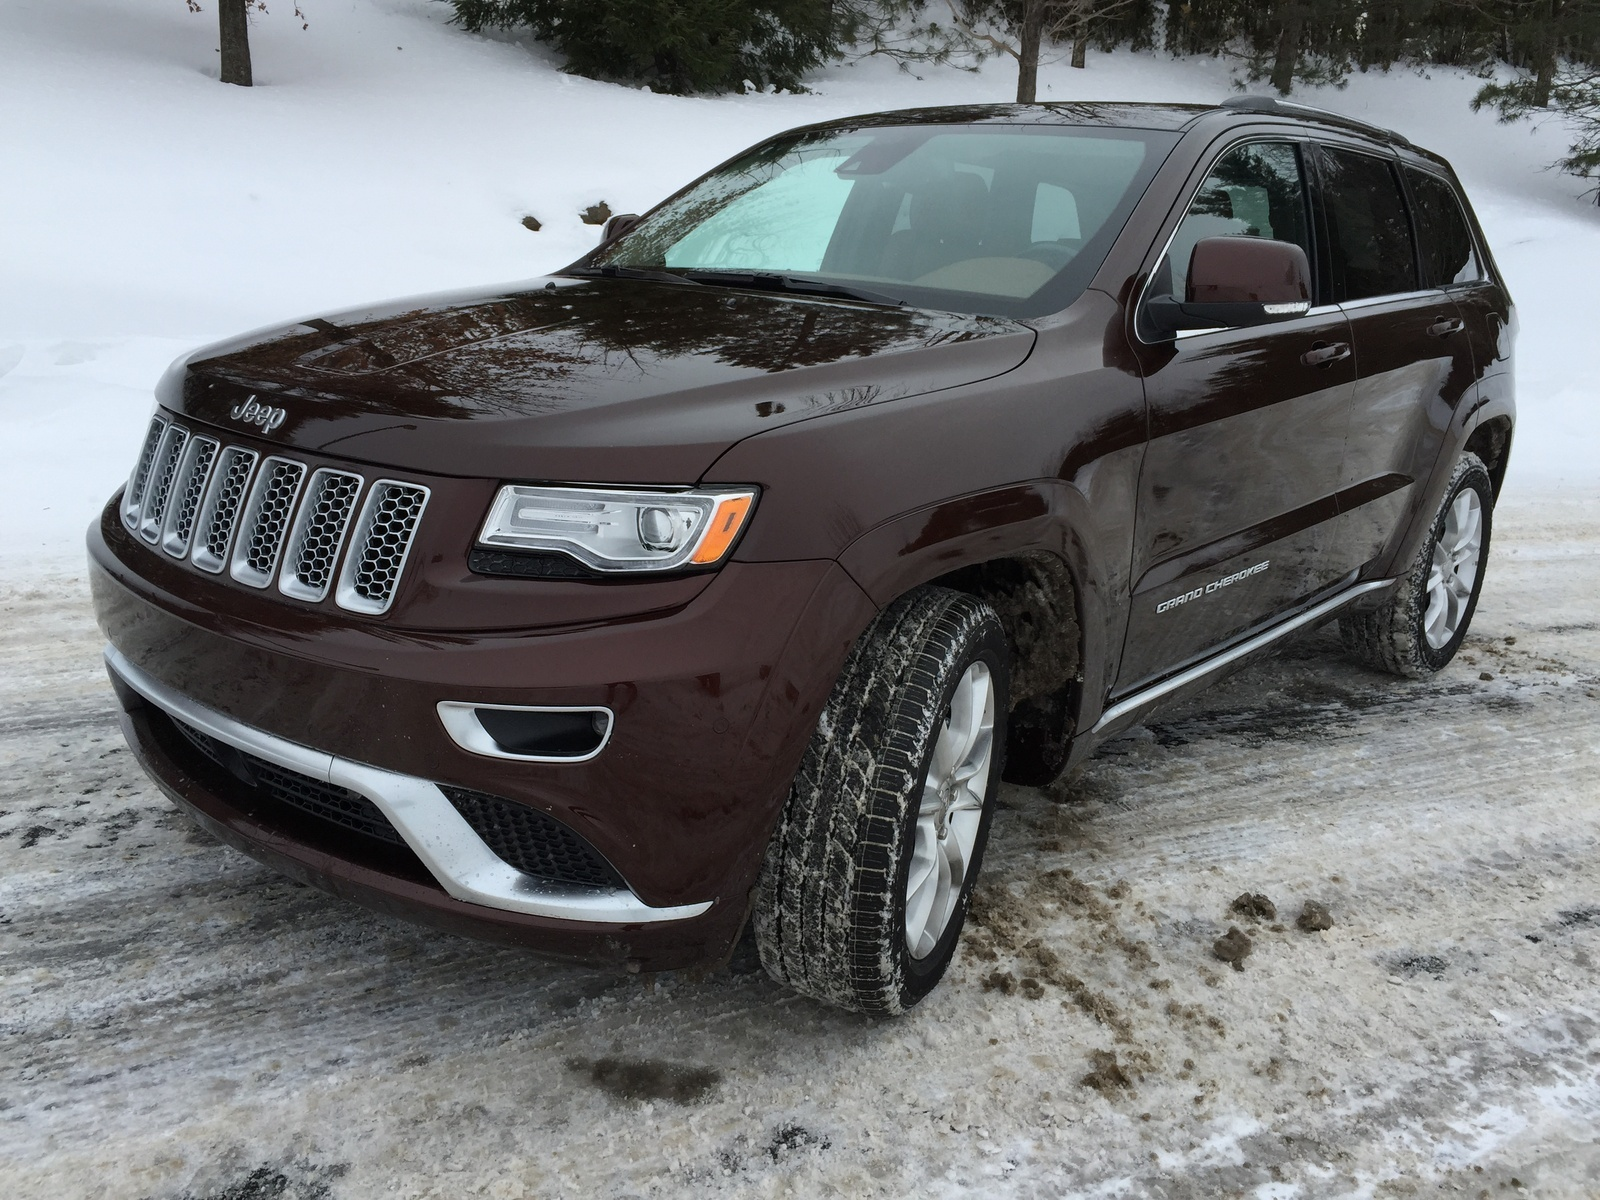 2015 jeep grand cherokee pic